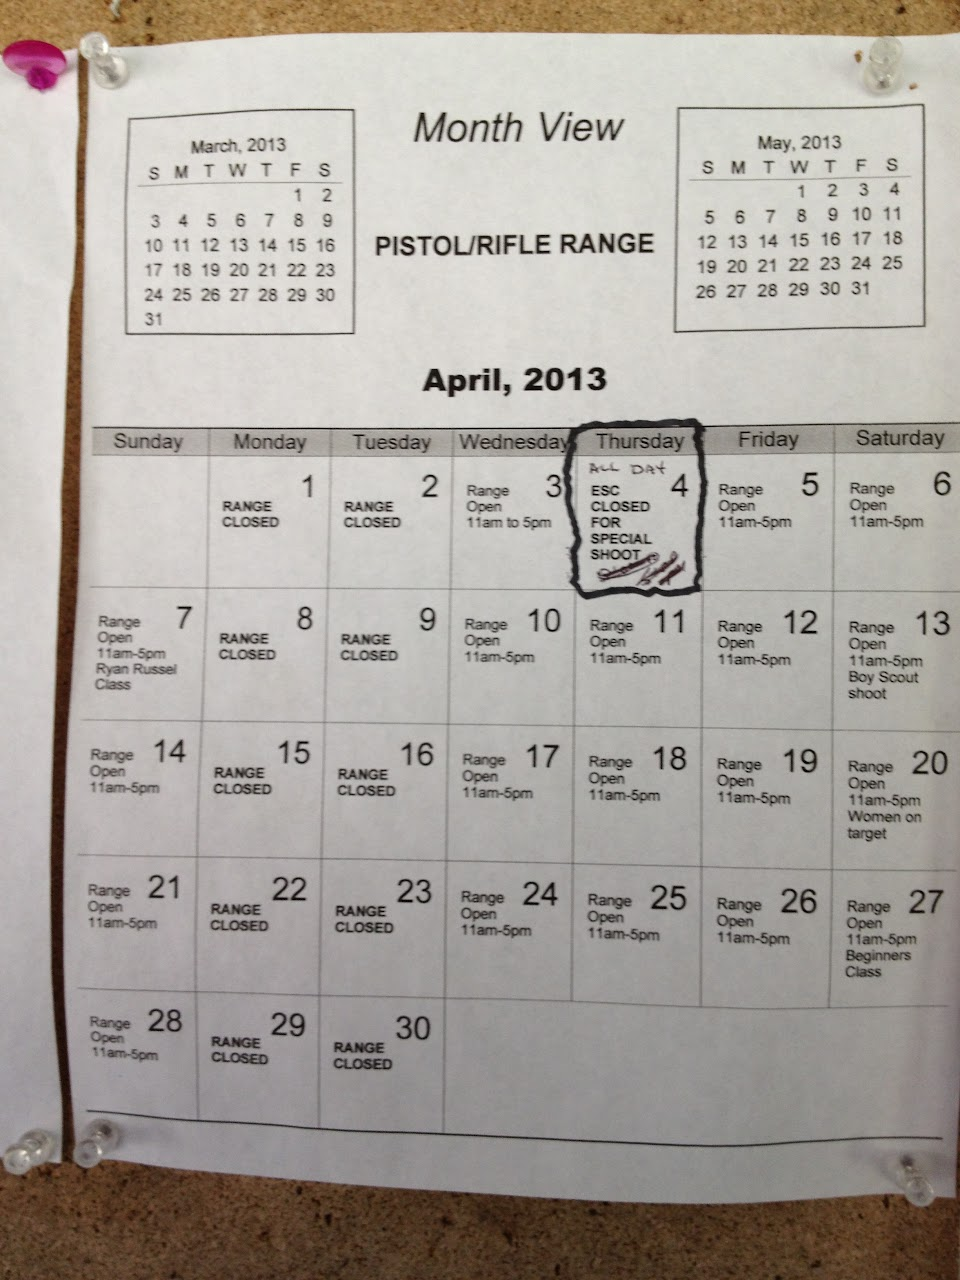 April 13, 2013 -- we are on the Calendar!